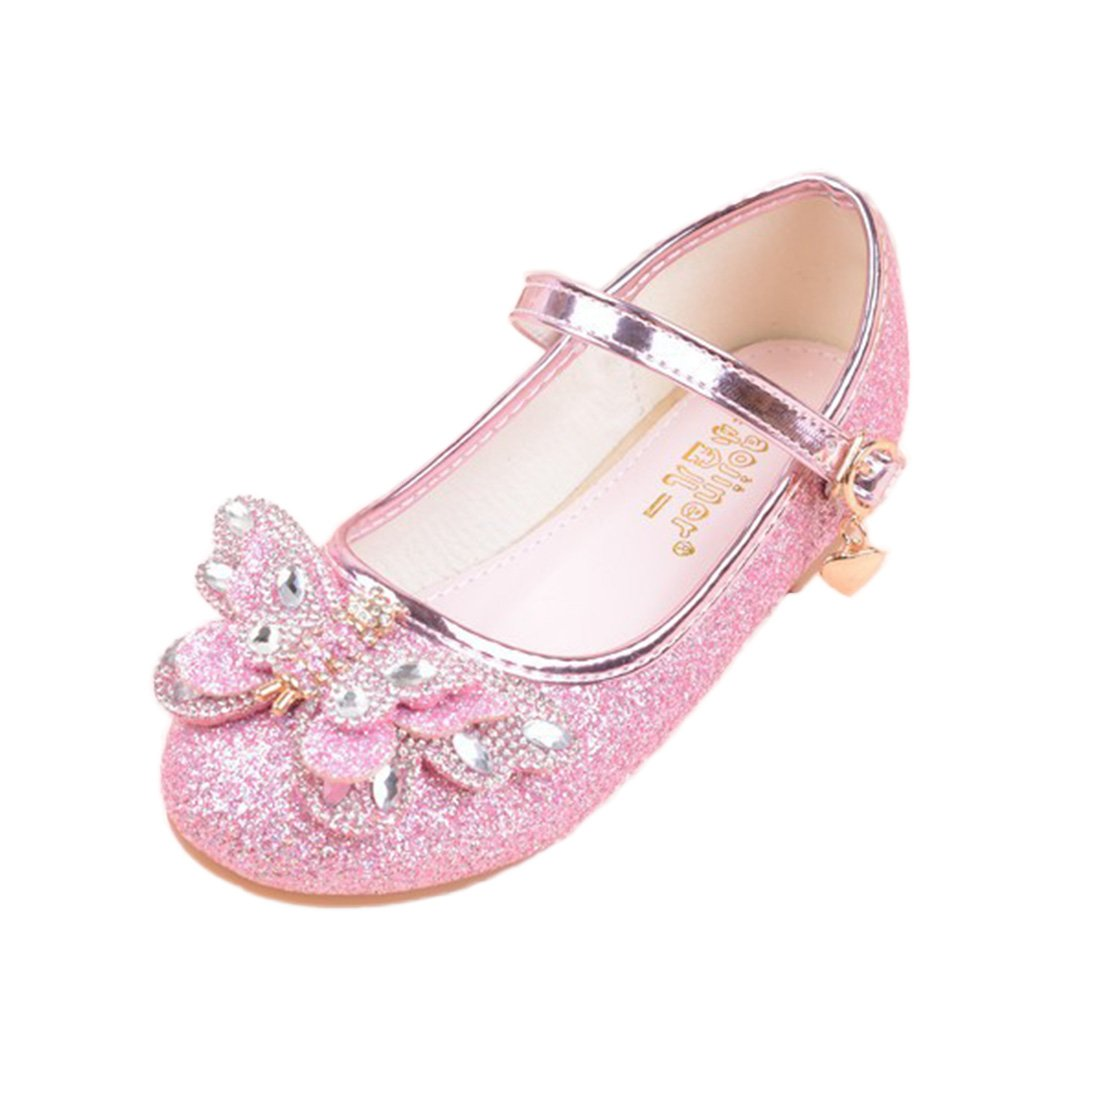 YIBLBOX Kids Girls Butterfly Ballet Flat Shoes Sequin Princess Dress Shoes Cosplay Wedding Mary Janes